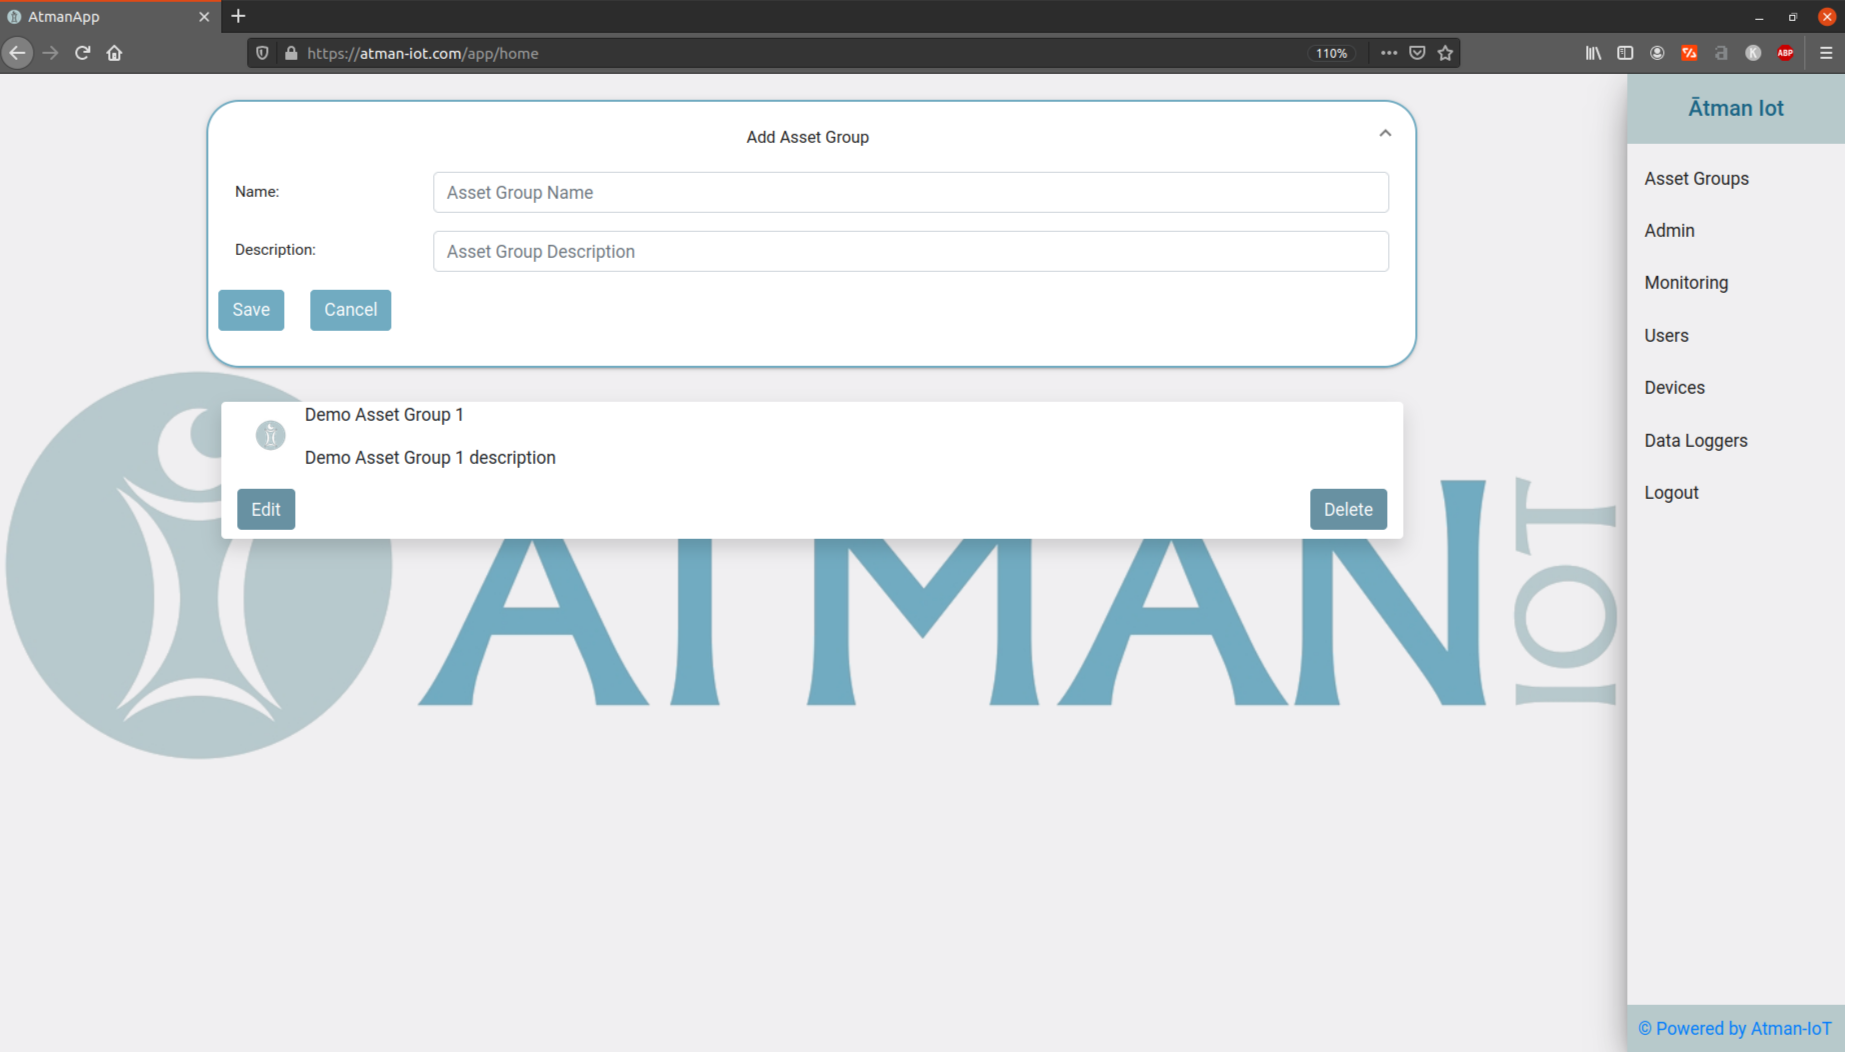 "alt ""Atman IoT – New Asset Group"